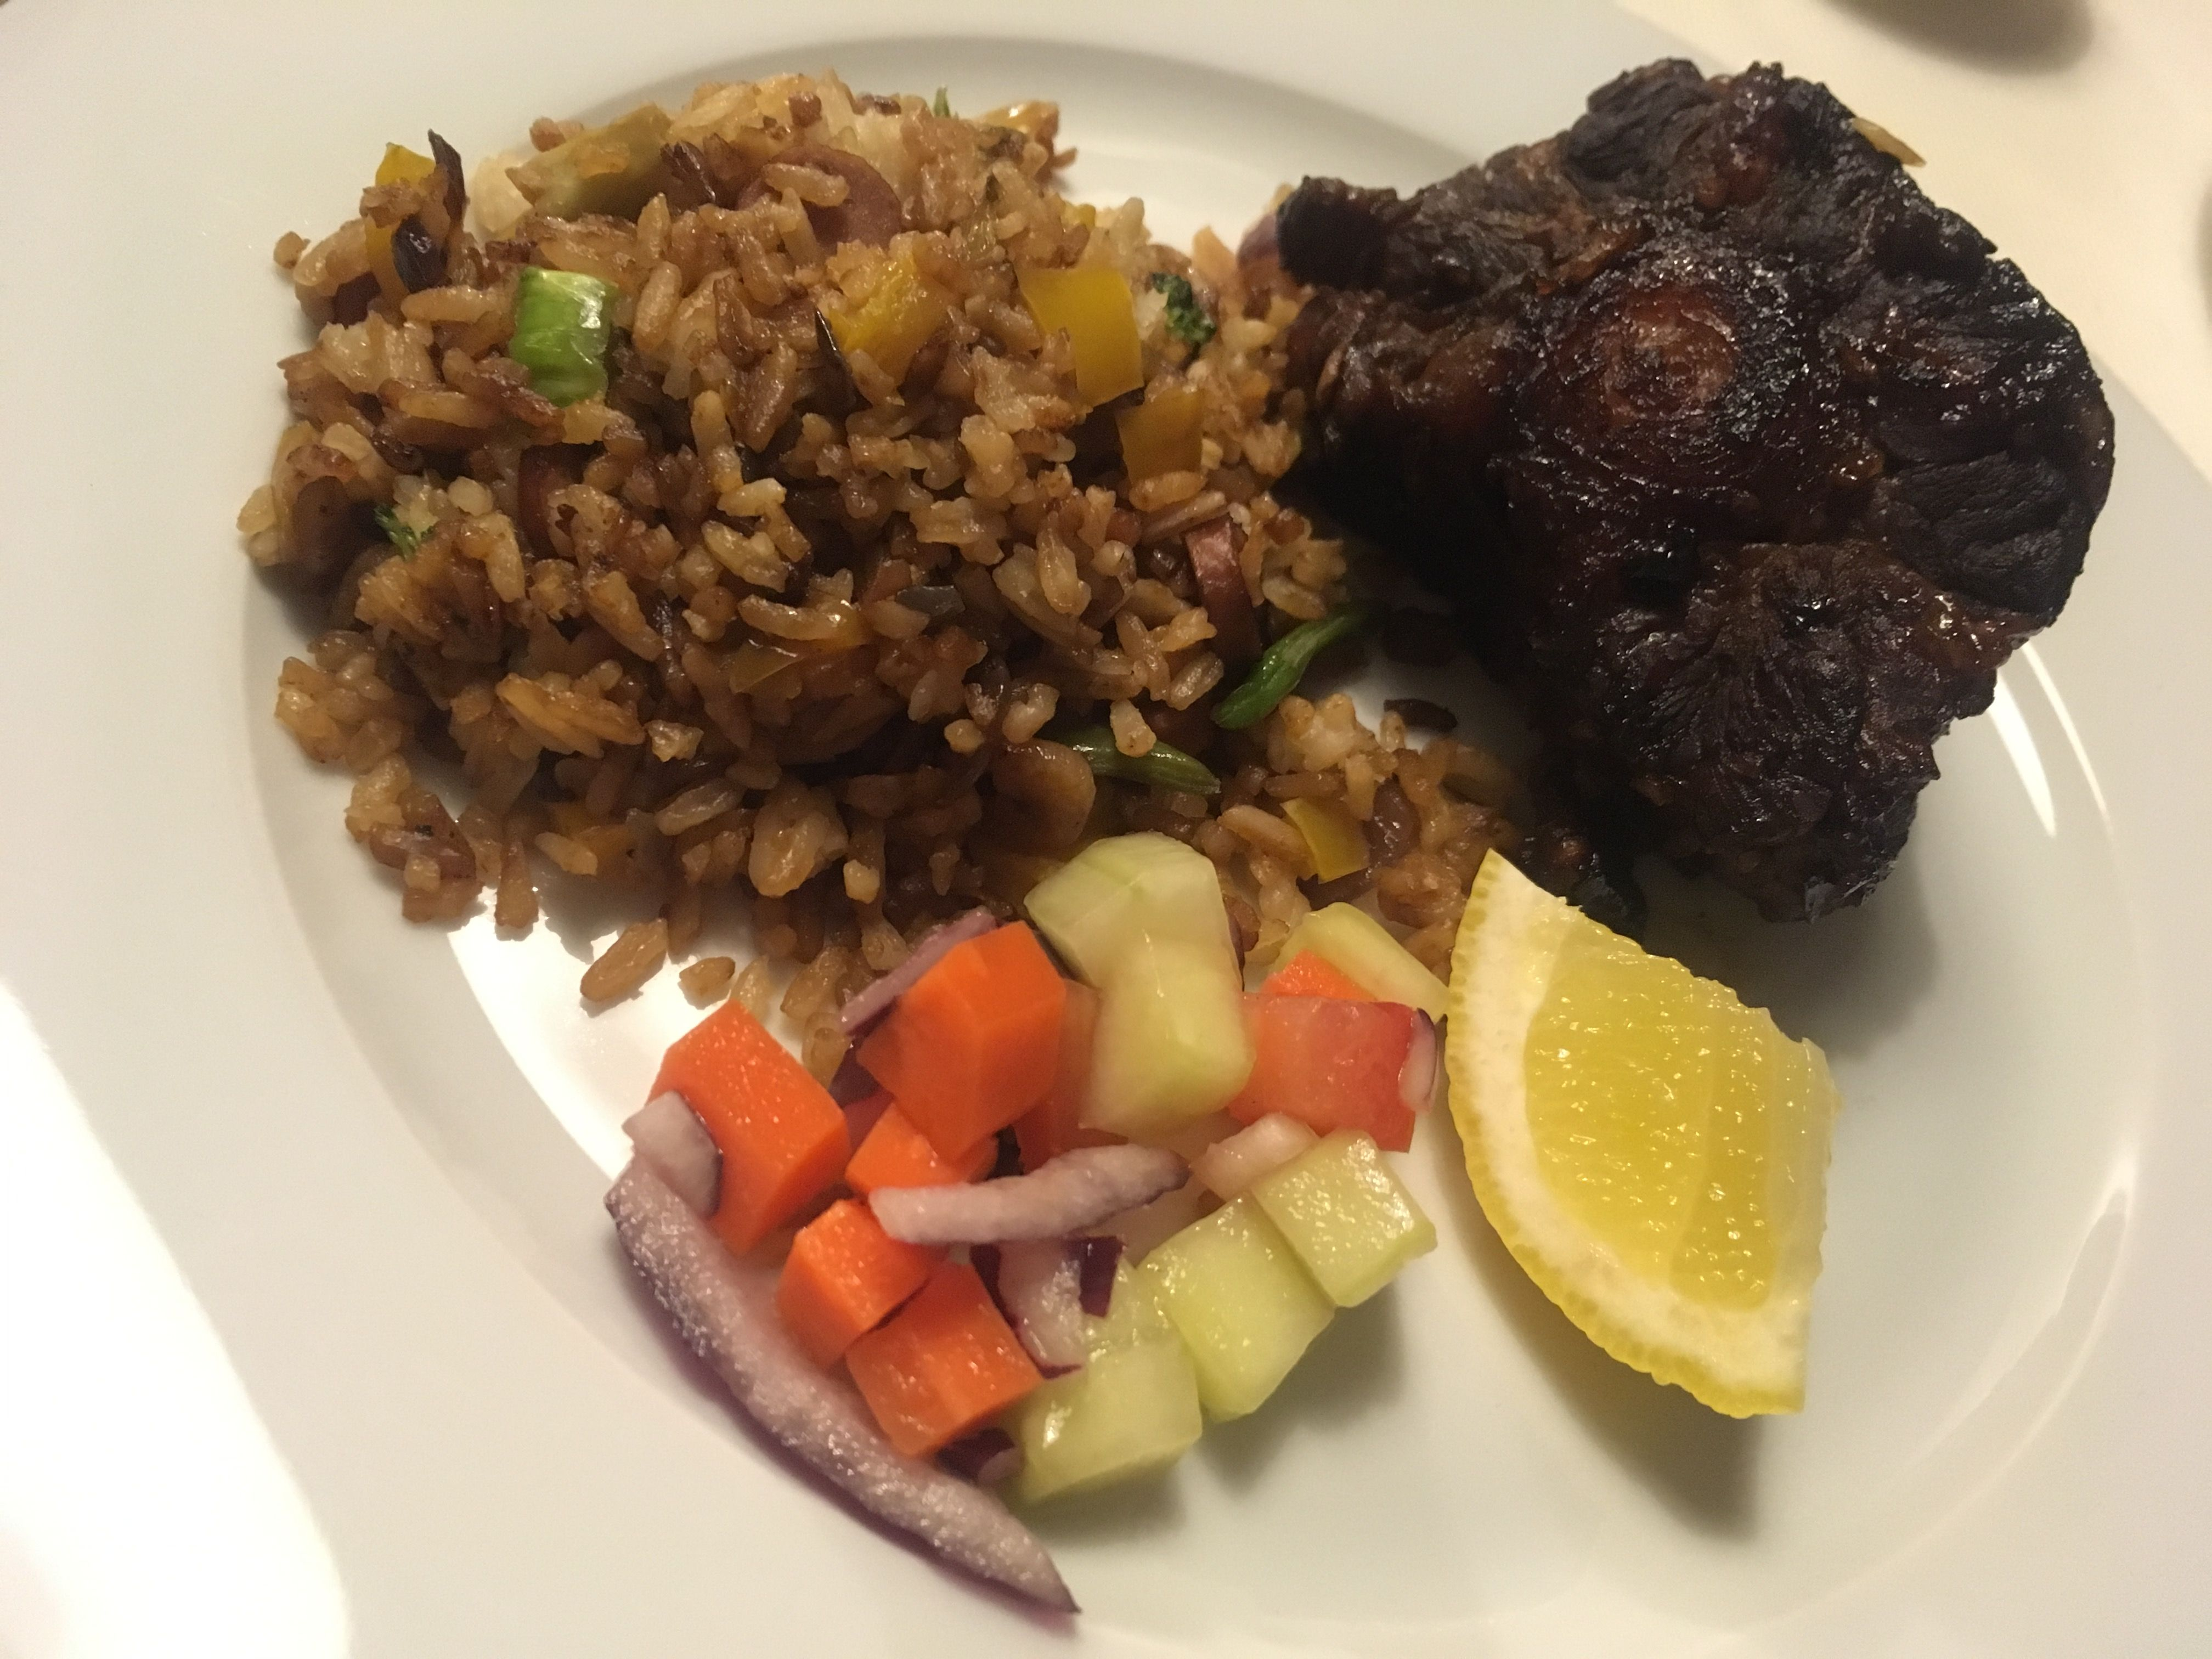 Fried rice oxtail oxtail food fried rice